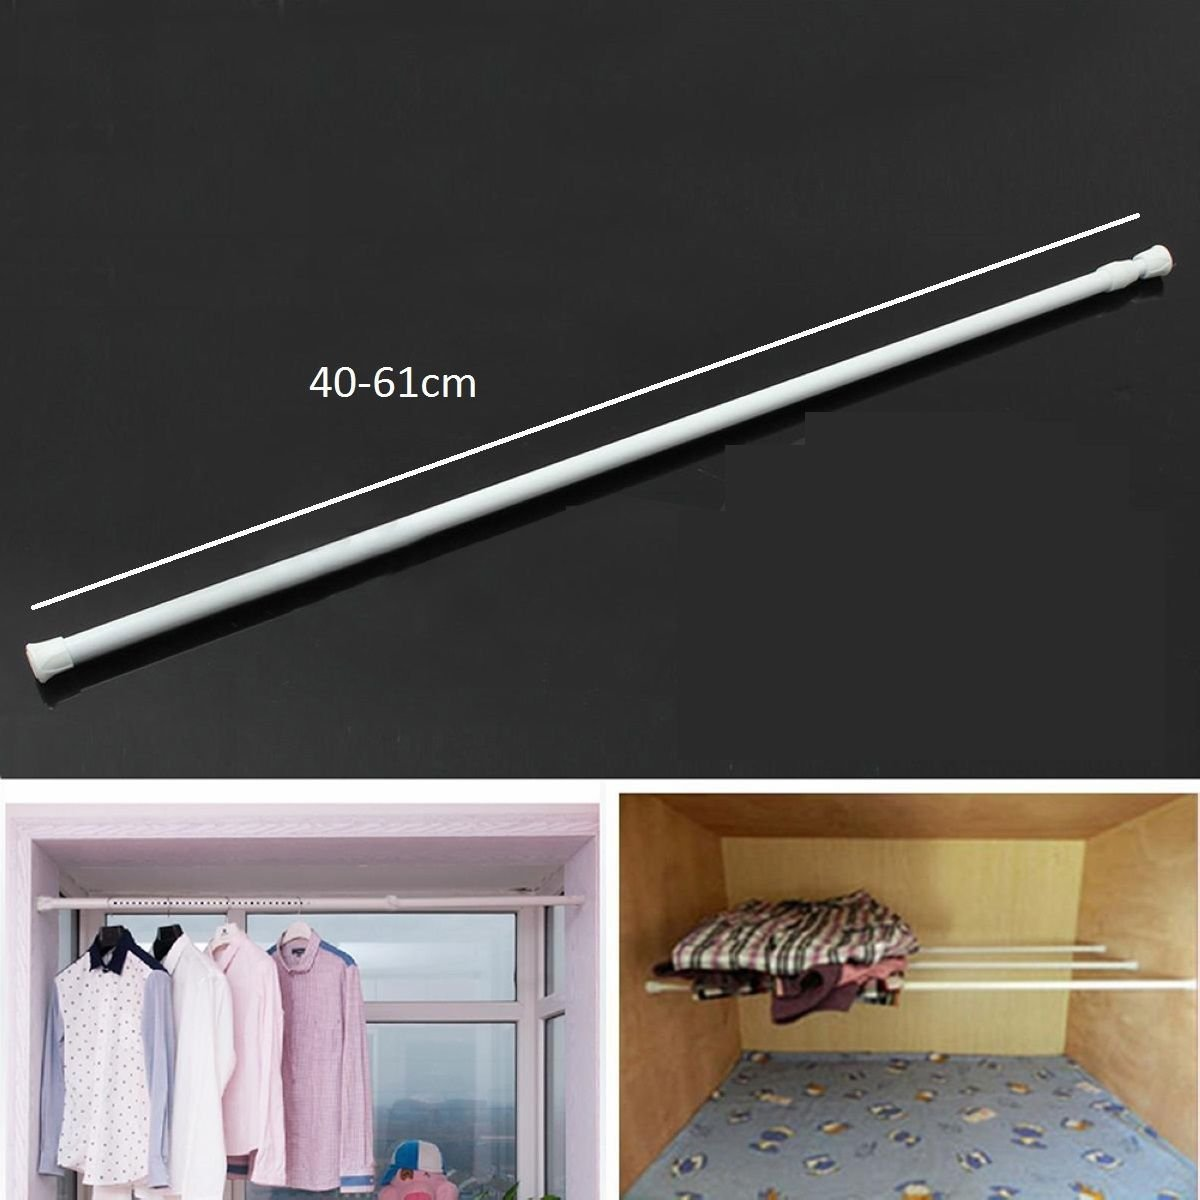 Curtain & Blind Accessories Gemini_mall® Curtain Rod Home & Kitchen Spring Loaded Extendable Telescopic Net Voile Tension Curtain Rail Pole Rod Rods White 40-75cm